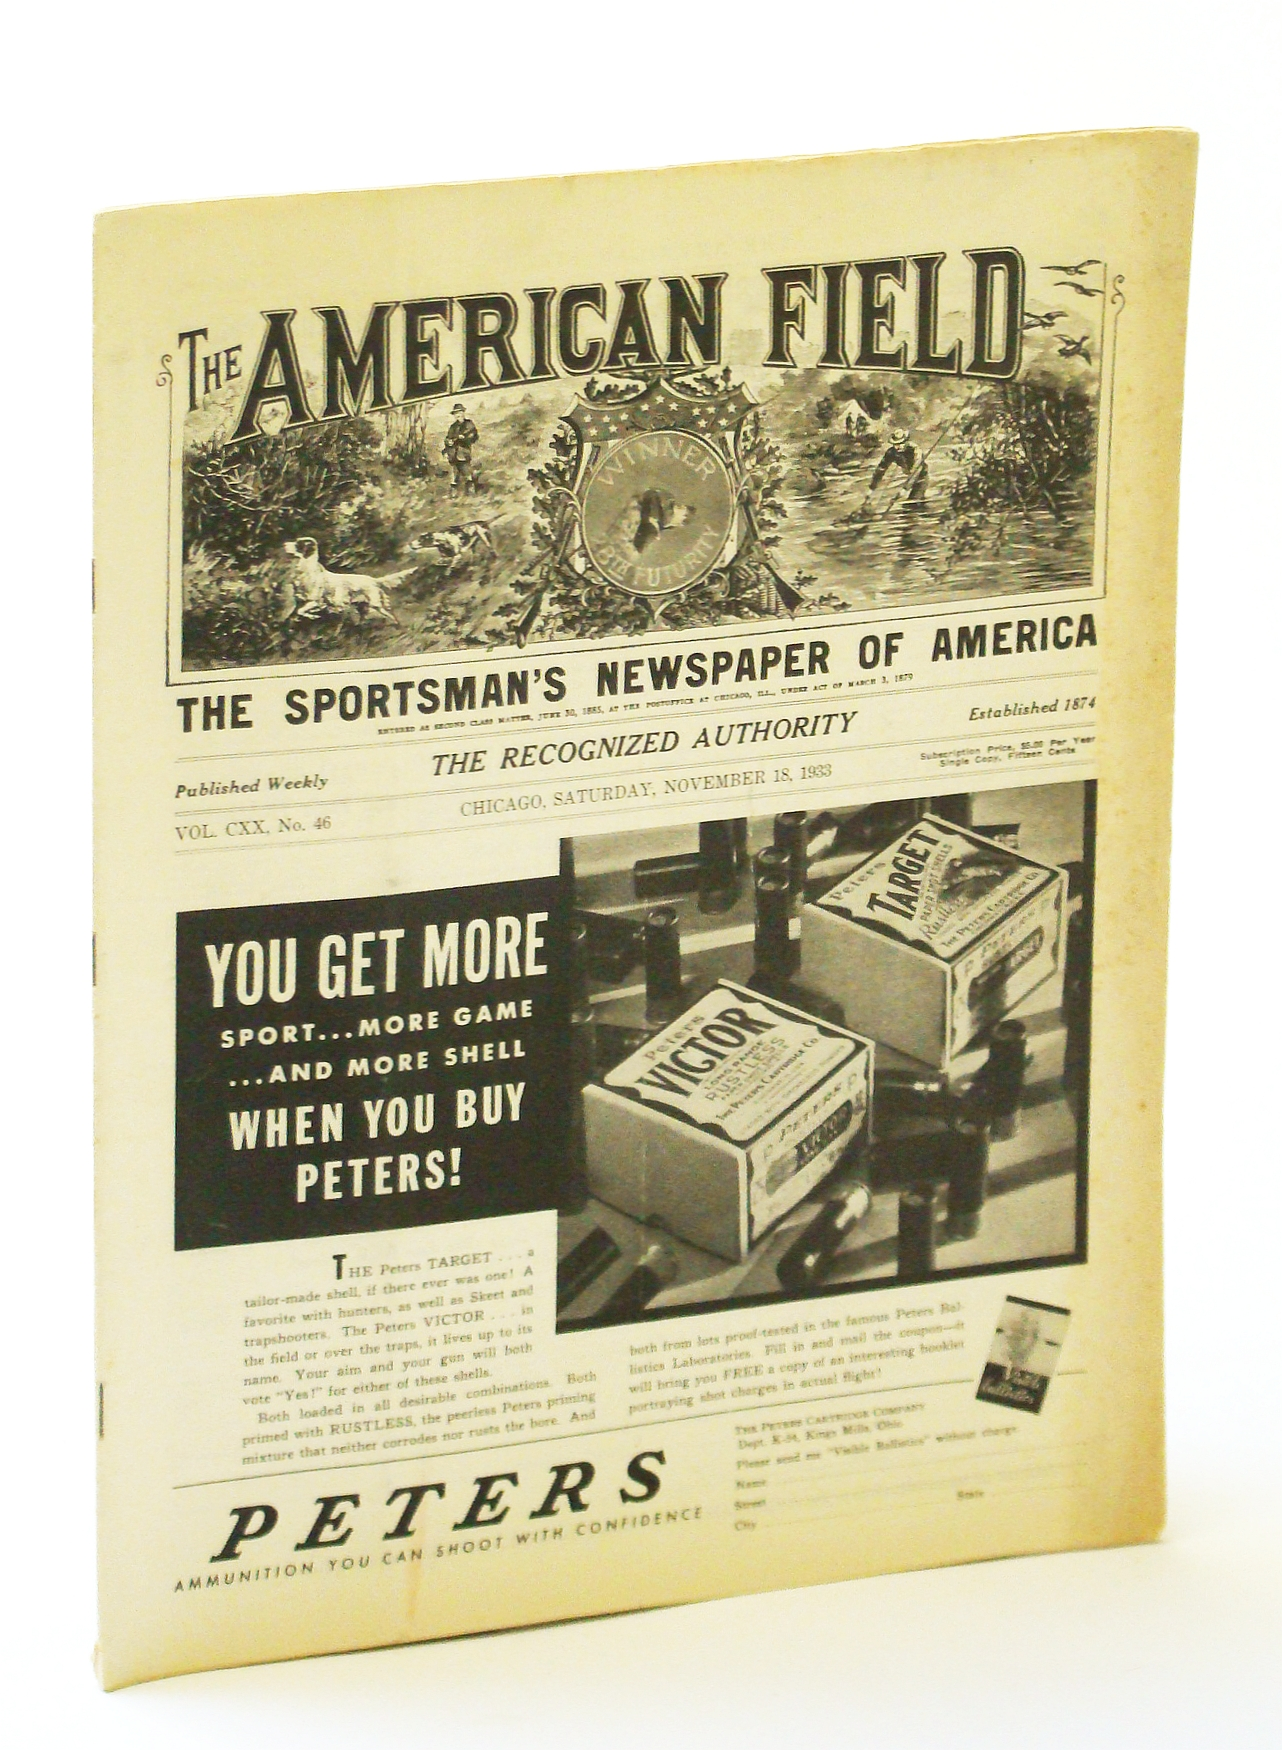 Image for The American Field - The Sportsman's Newspaper [Magazine] of America, November [Nov.] 18, 1933, Vol. CXX, No. 46 - Conditions Threaten Wild Fowl Extermination